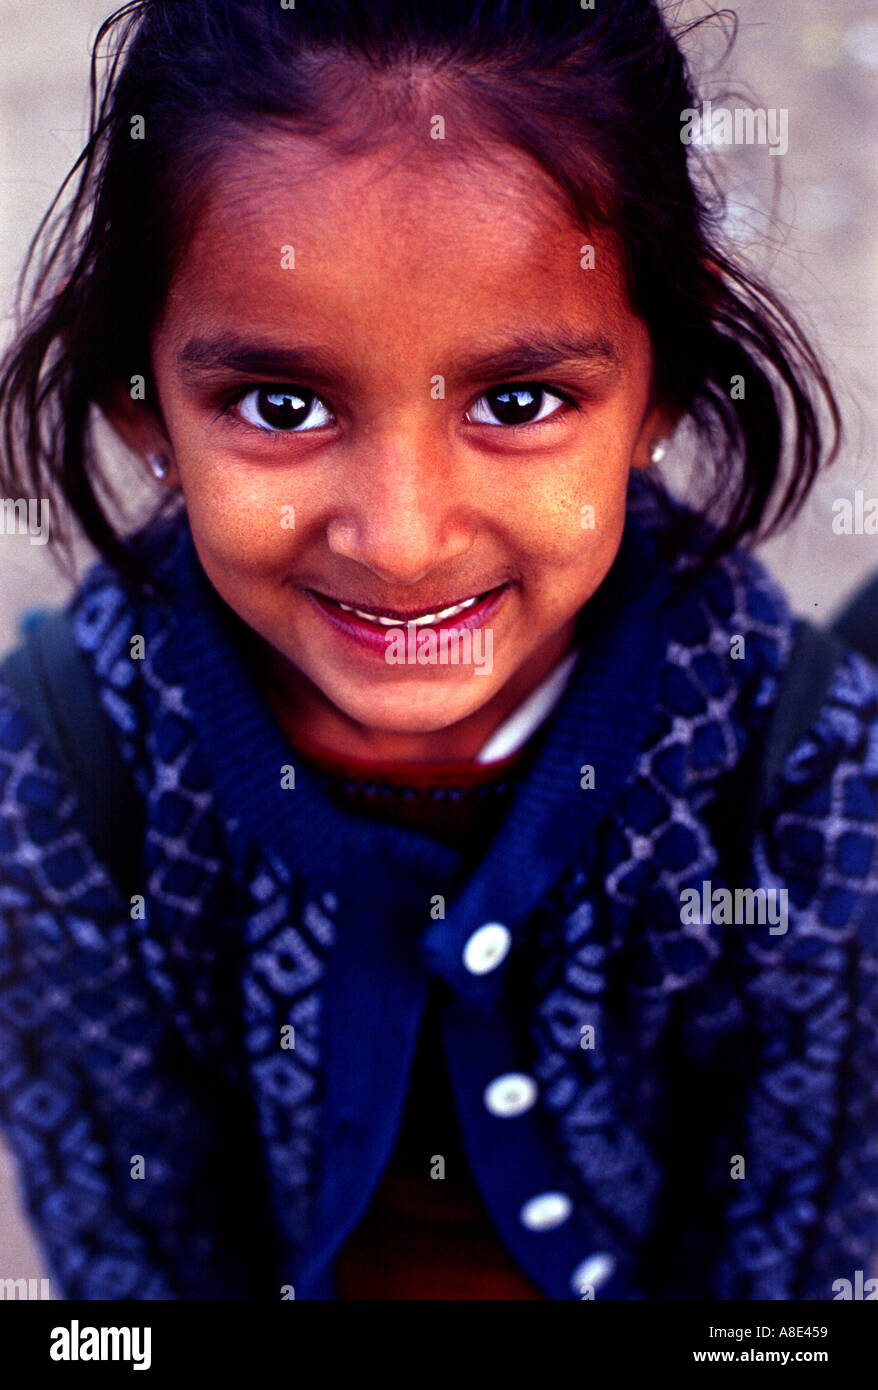 Young Indian Girl In Dark Blue Blouse